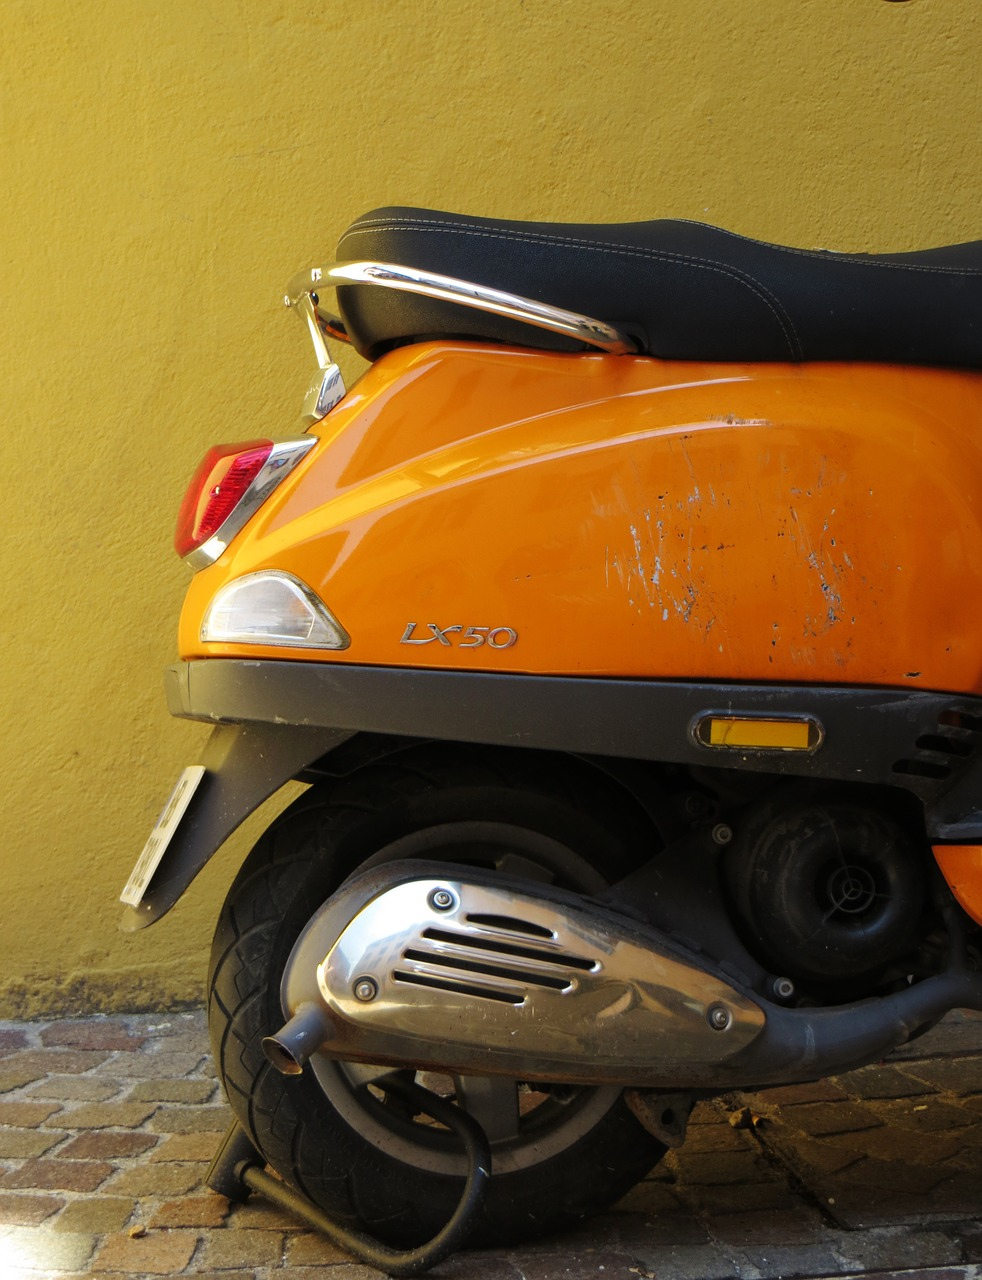 lx50 vespa orange free photo